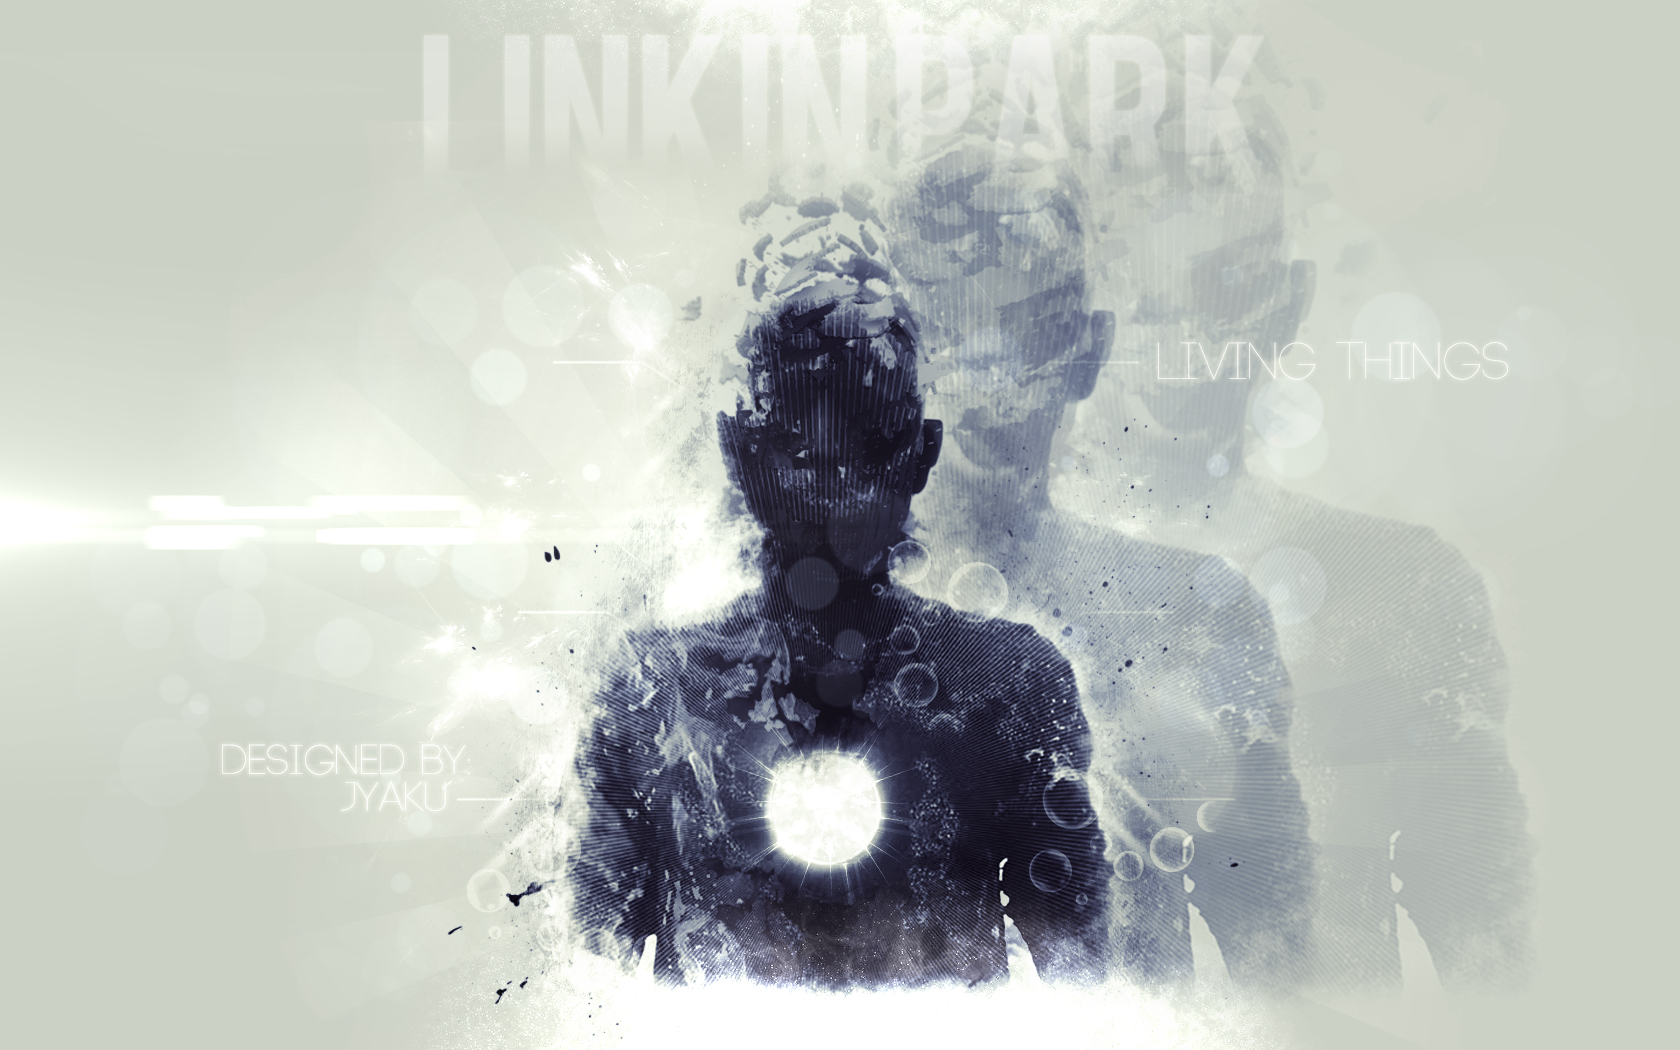 Linkin Park Living Things Desktop Wallpaper by JyakuDesigns